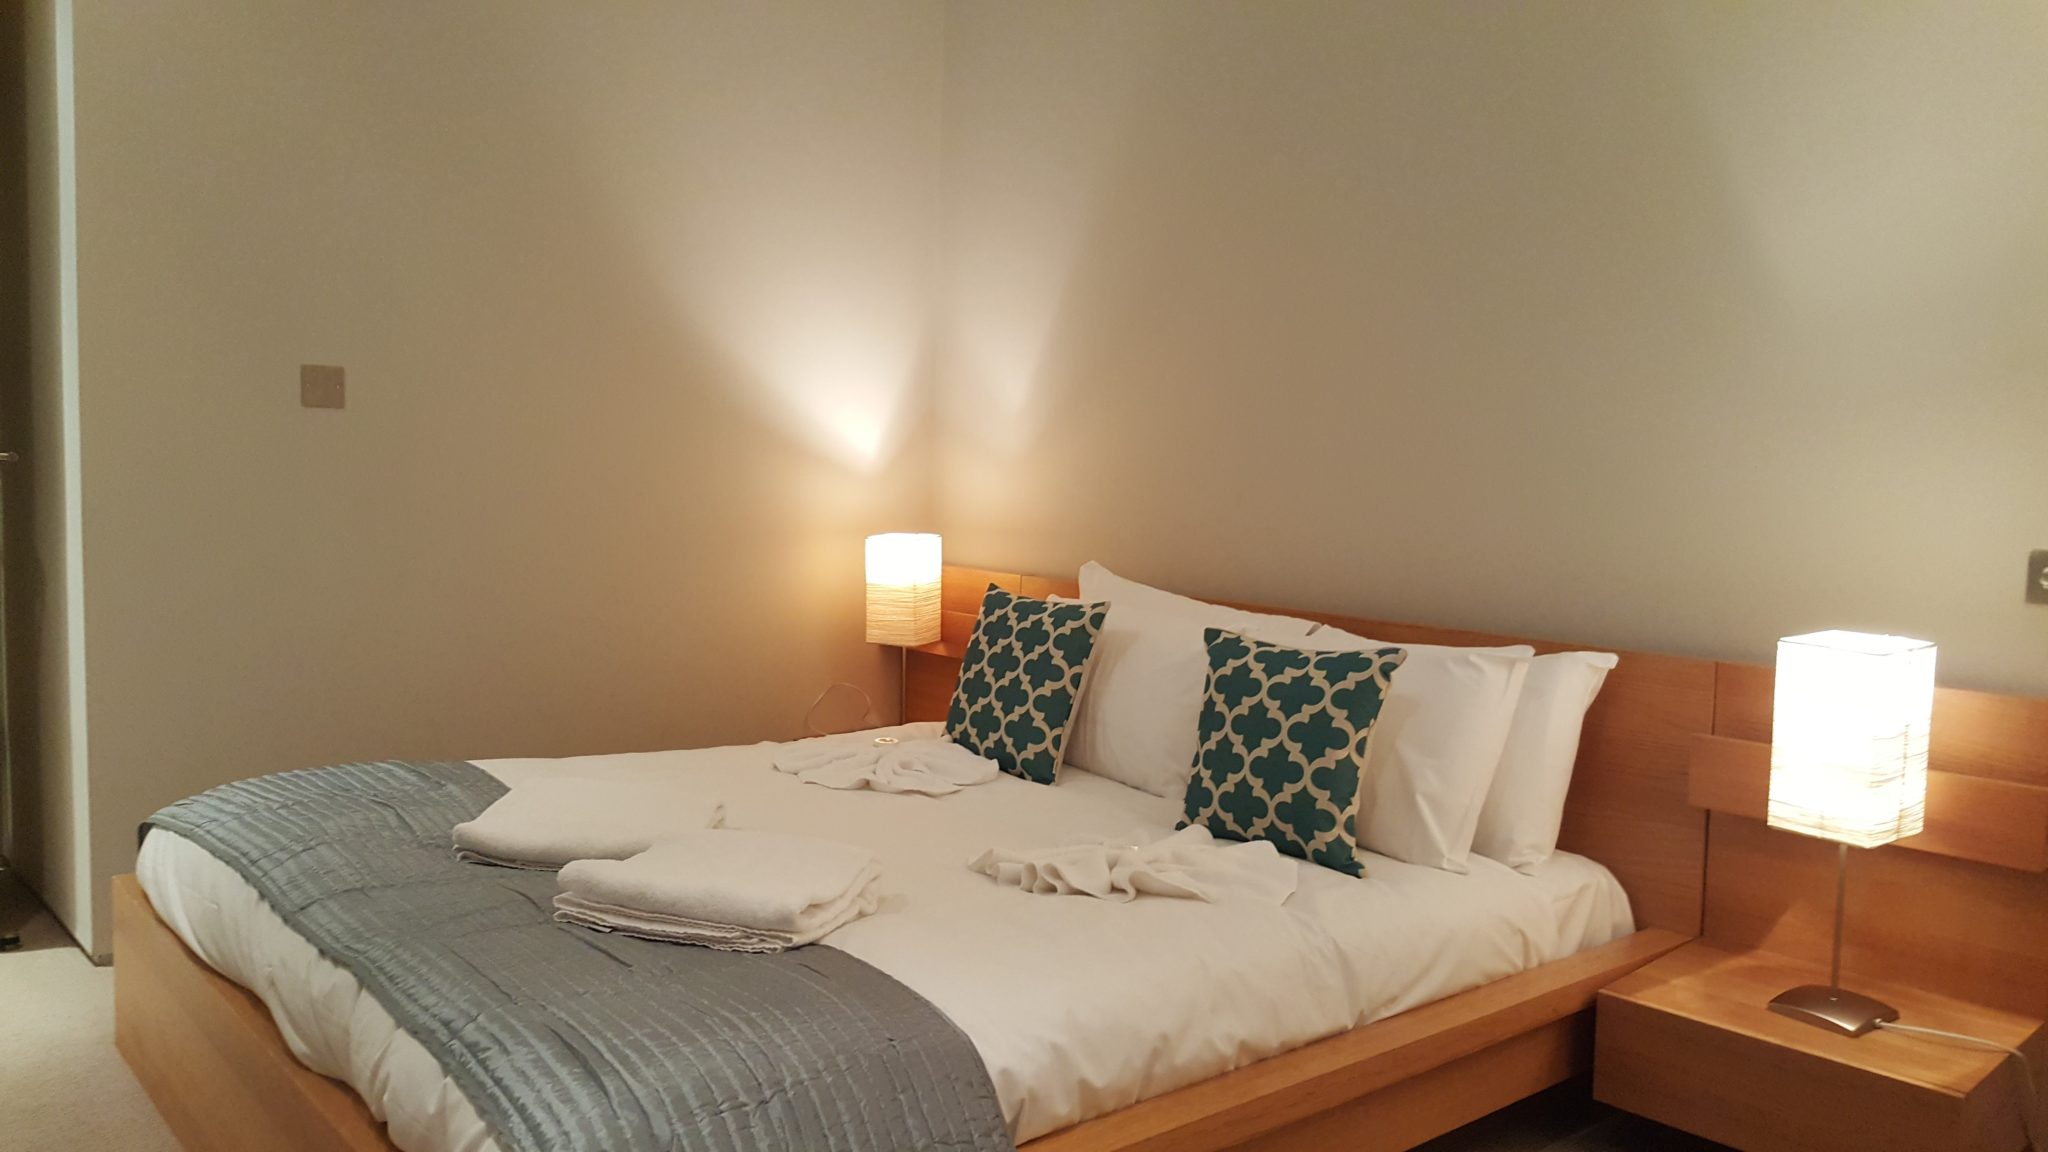 King's-Cross-Serviced-Accommodation-London---Book-Corporate-Short-Let-Accommodation-London-near-Euston-and-King's-Cross-now.-Free-Wifi---No-Booking-Fees!